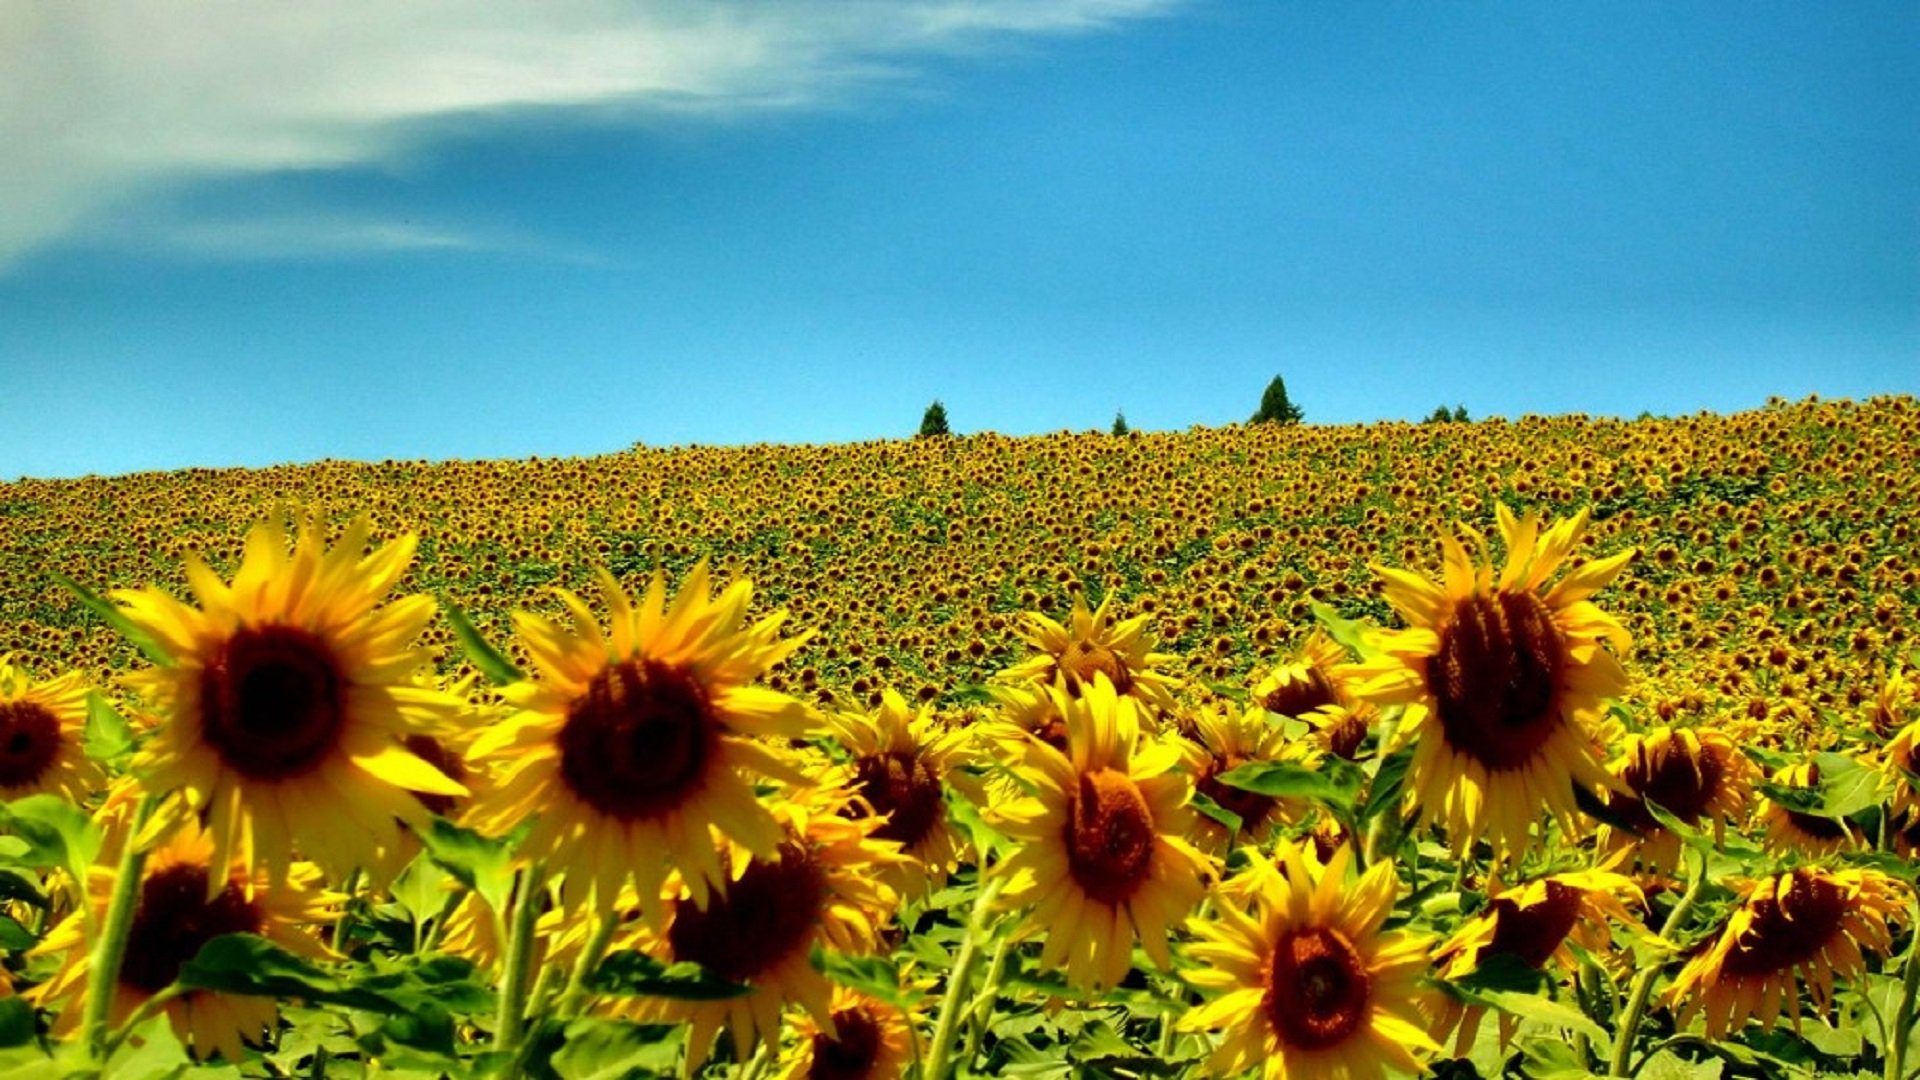 sunflowerssummerseasonhdfreewallpapersfordesktops